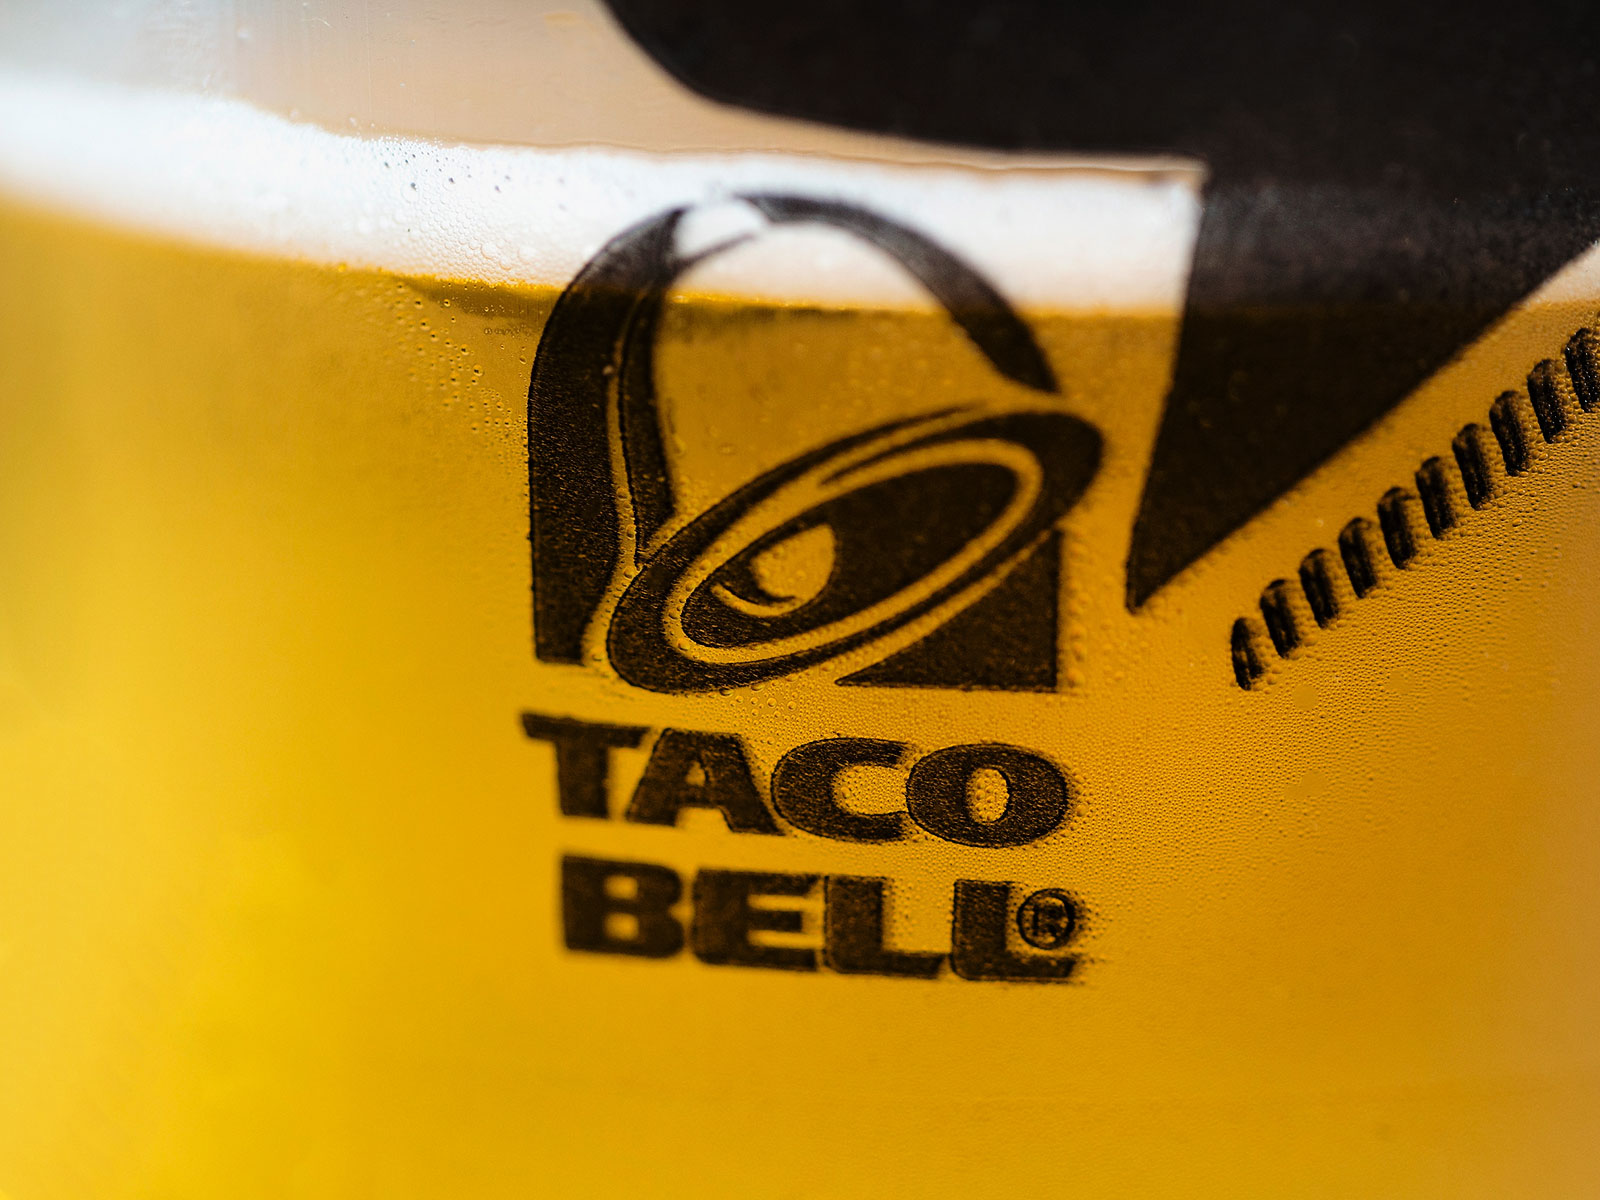 These new Taco Bell restaurants won't have drive-thru